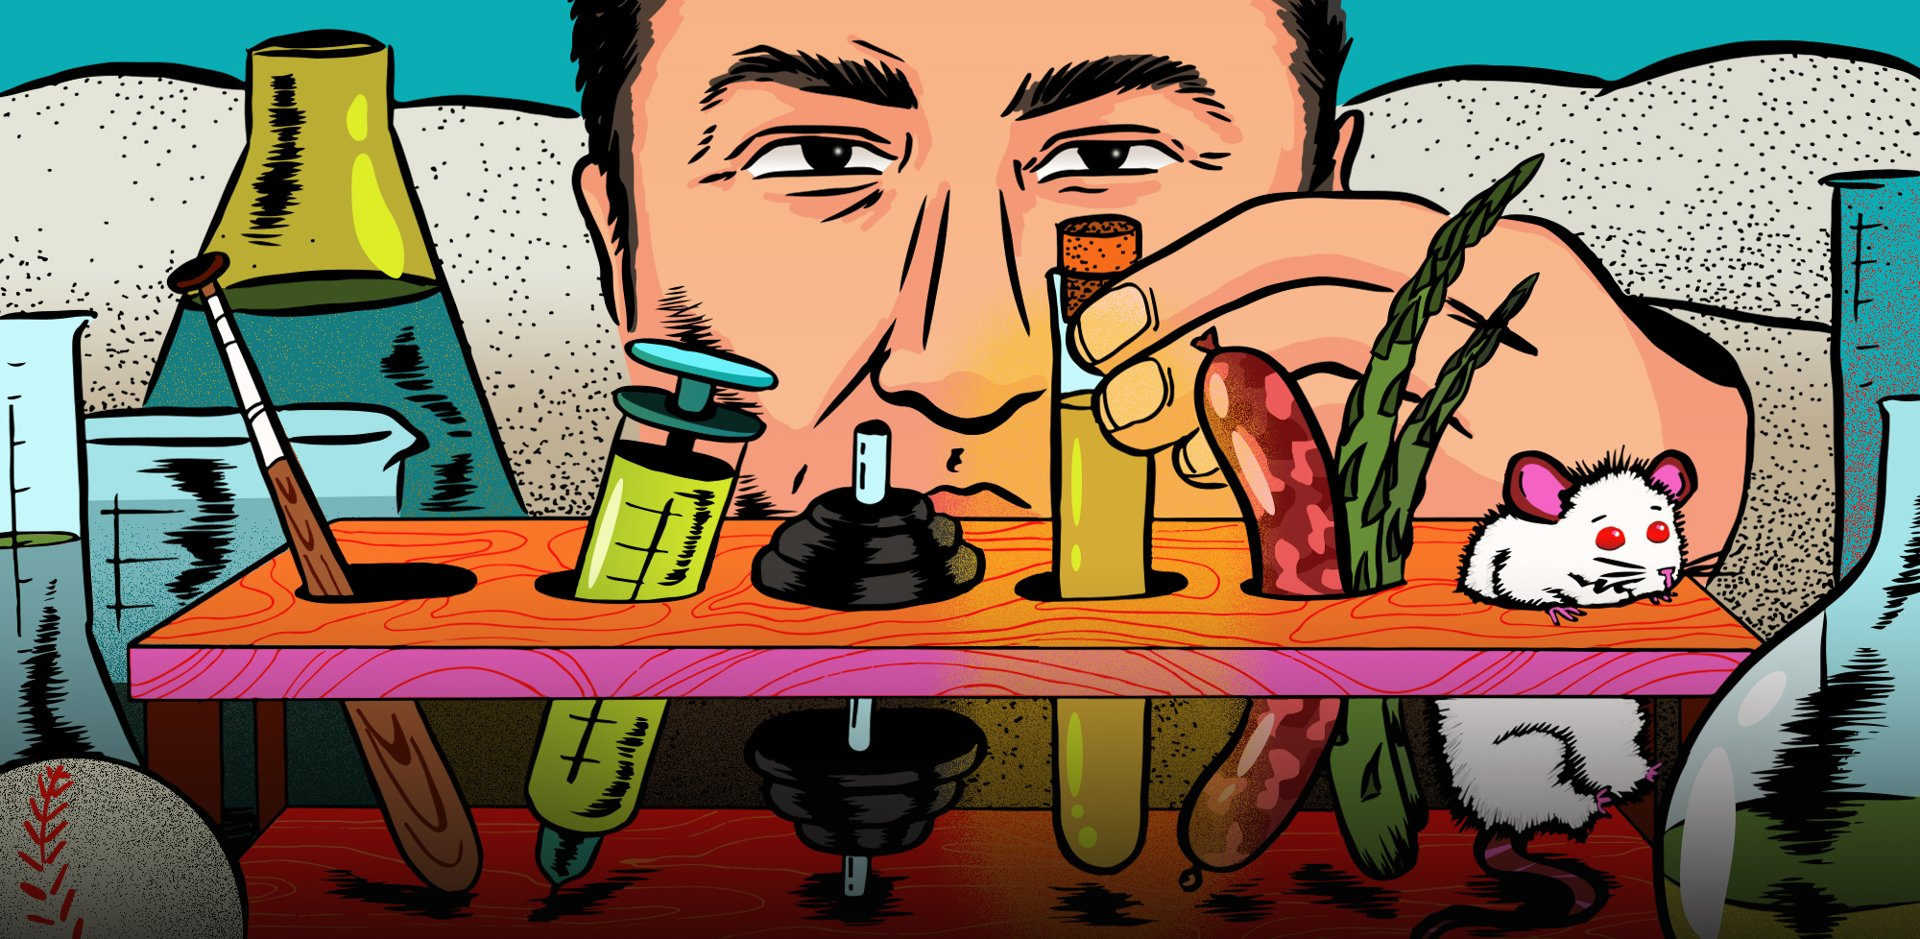 An illustration of a scientist looking at a test tube rack filled with miscellaneous items.